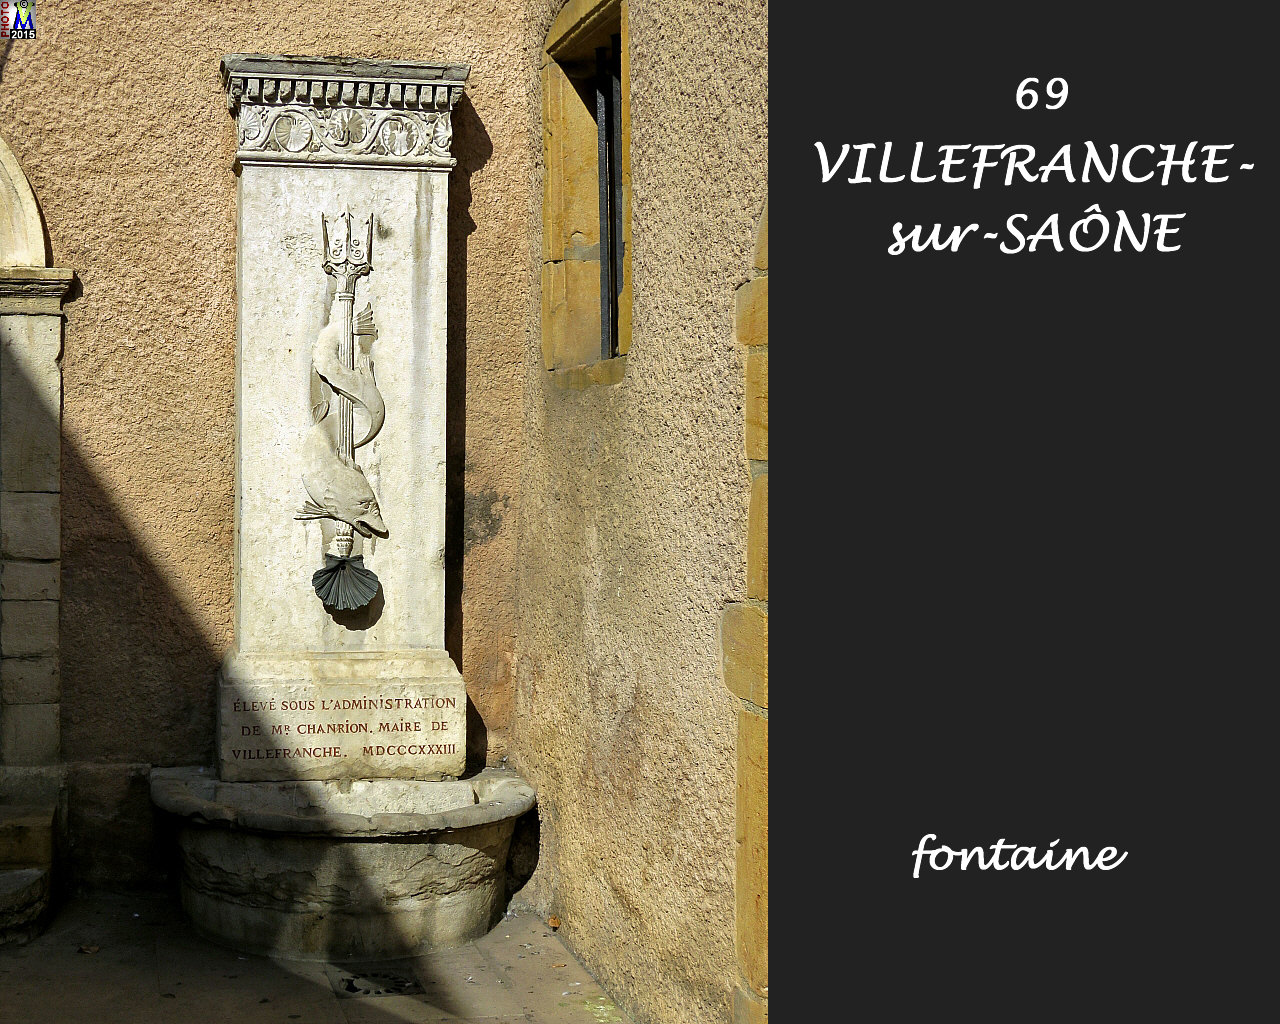 69VILLEFRANCHE-SAONE_fontaine_102.jpg